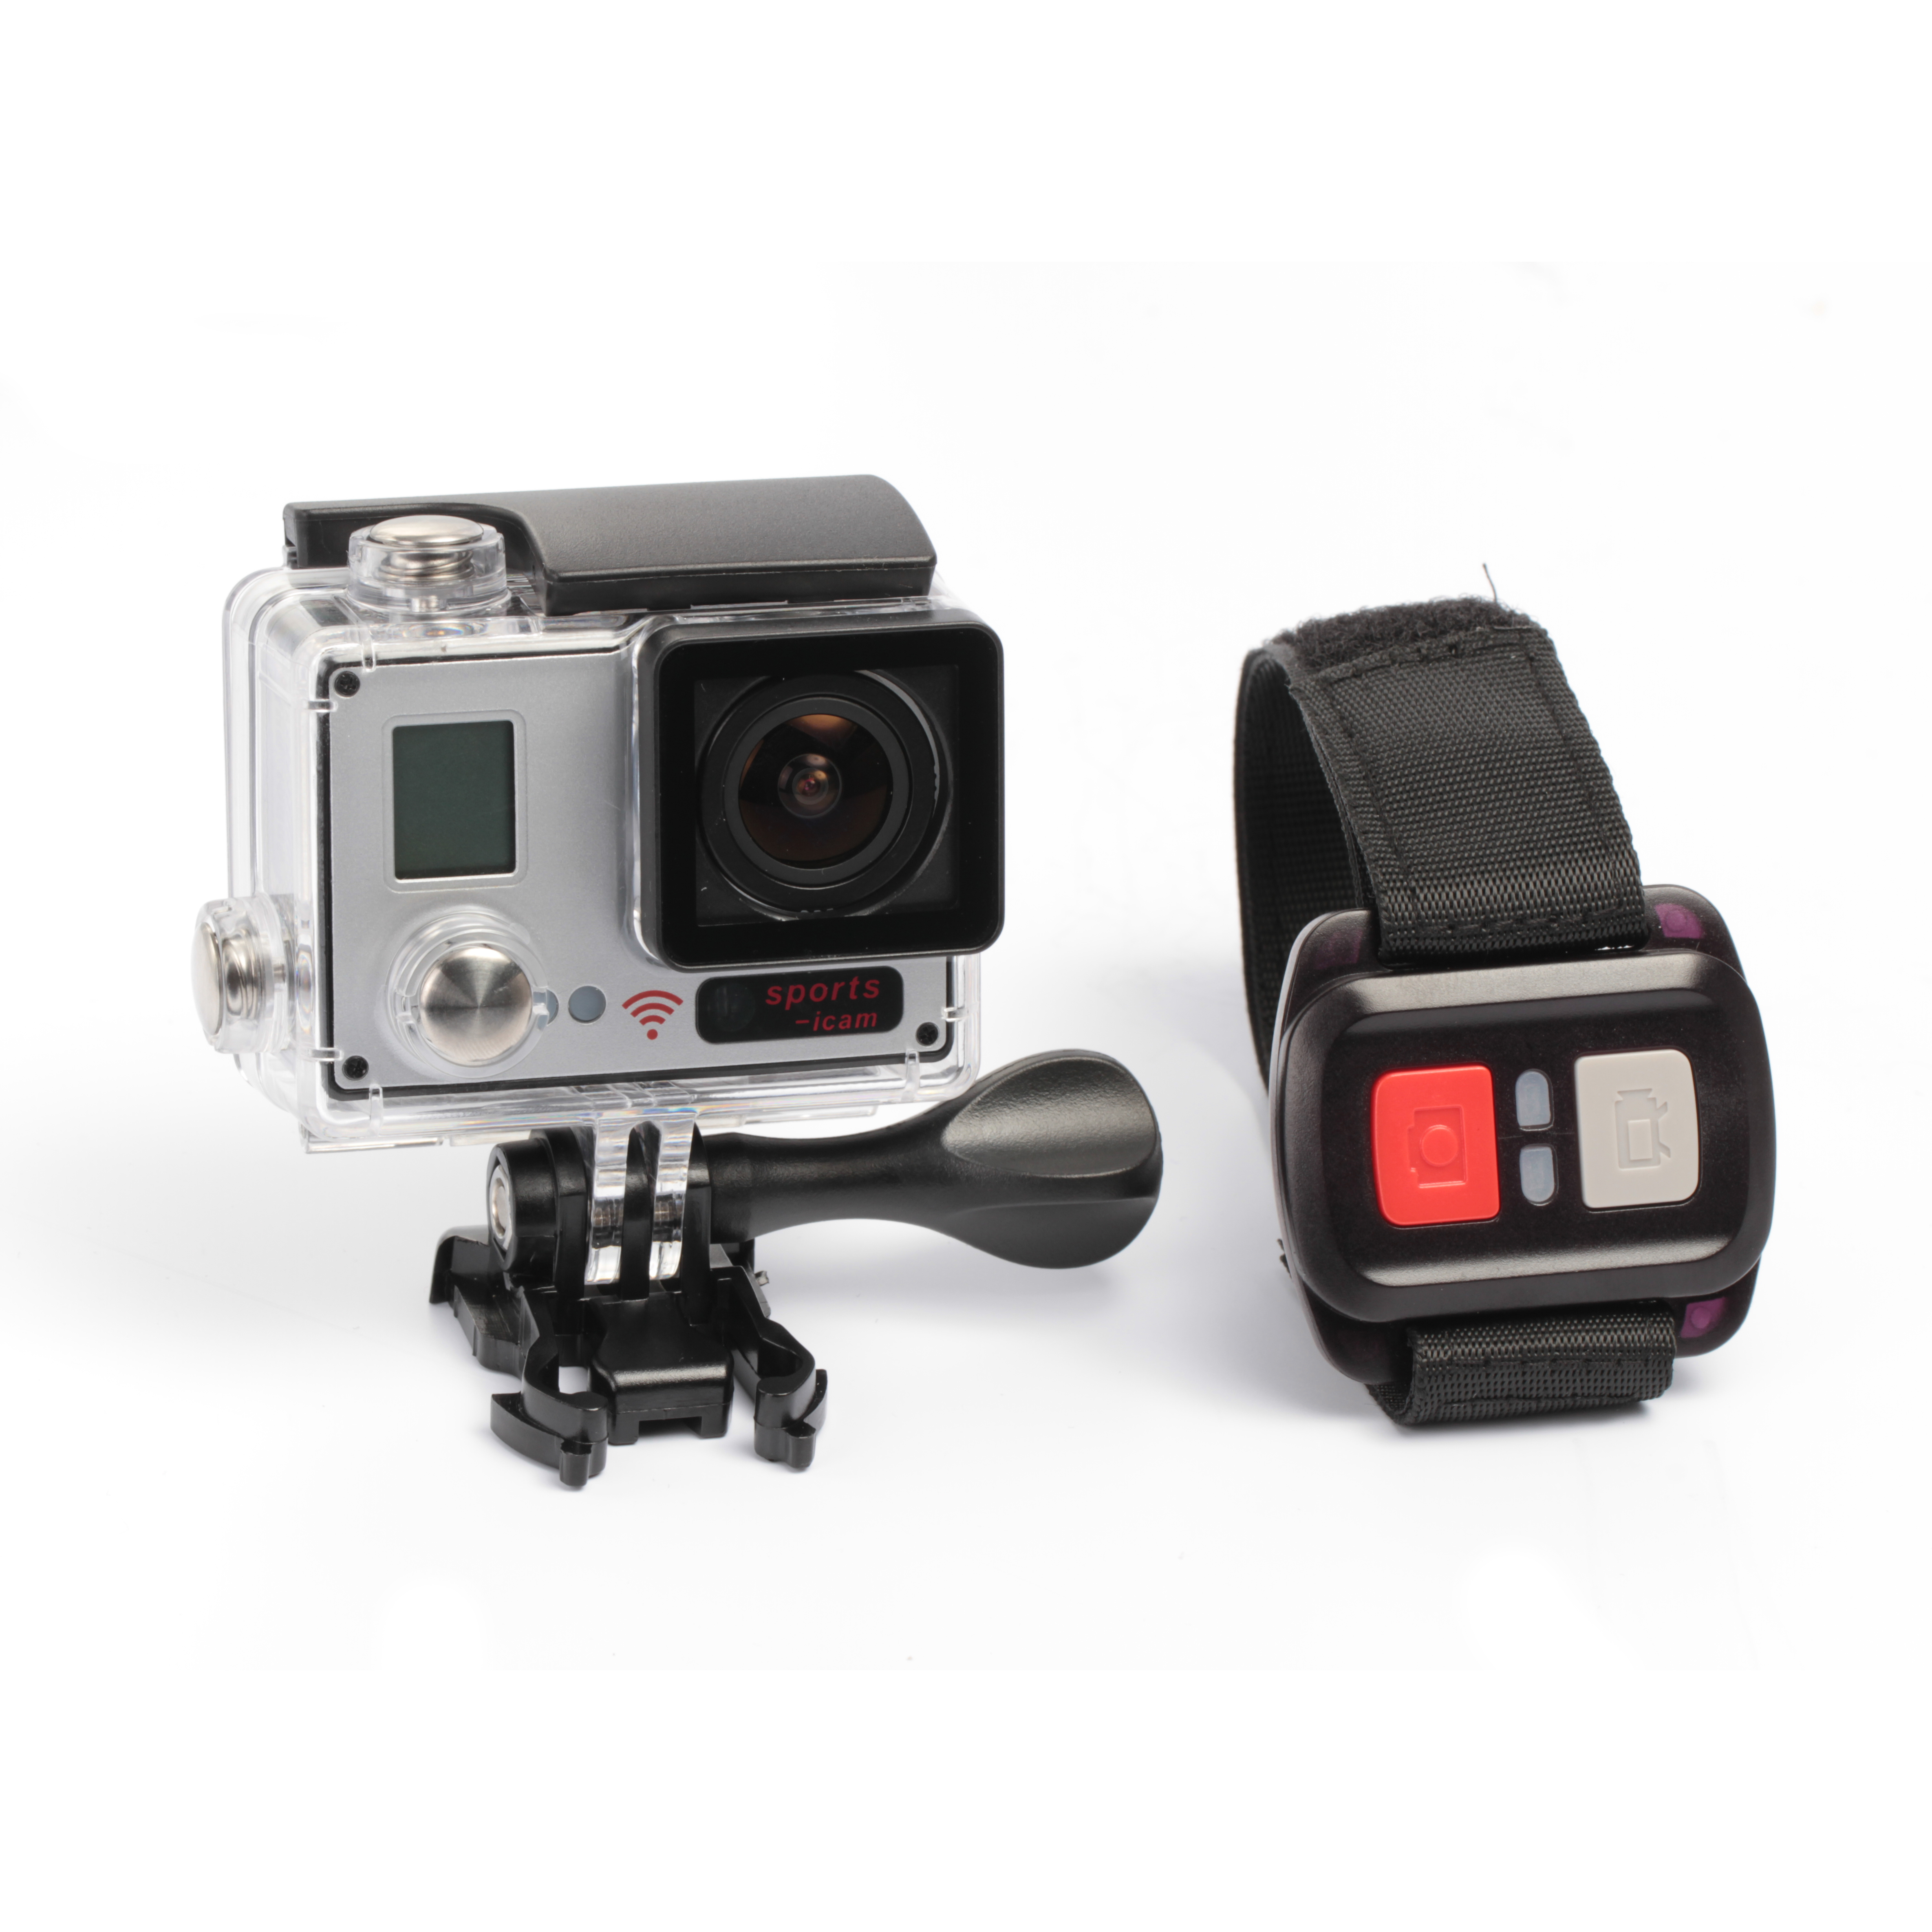 Chuangseer Action camera-S8